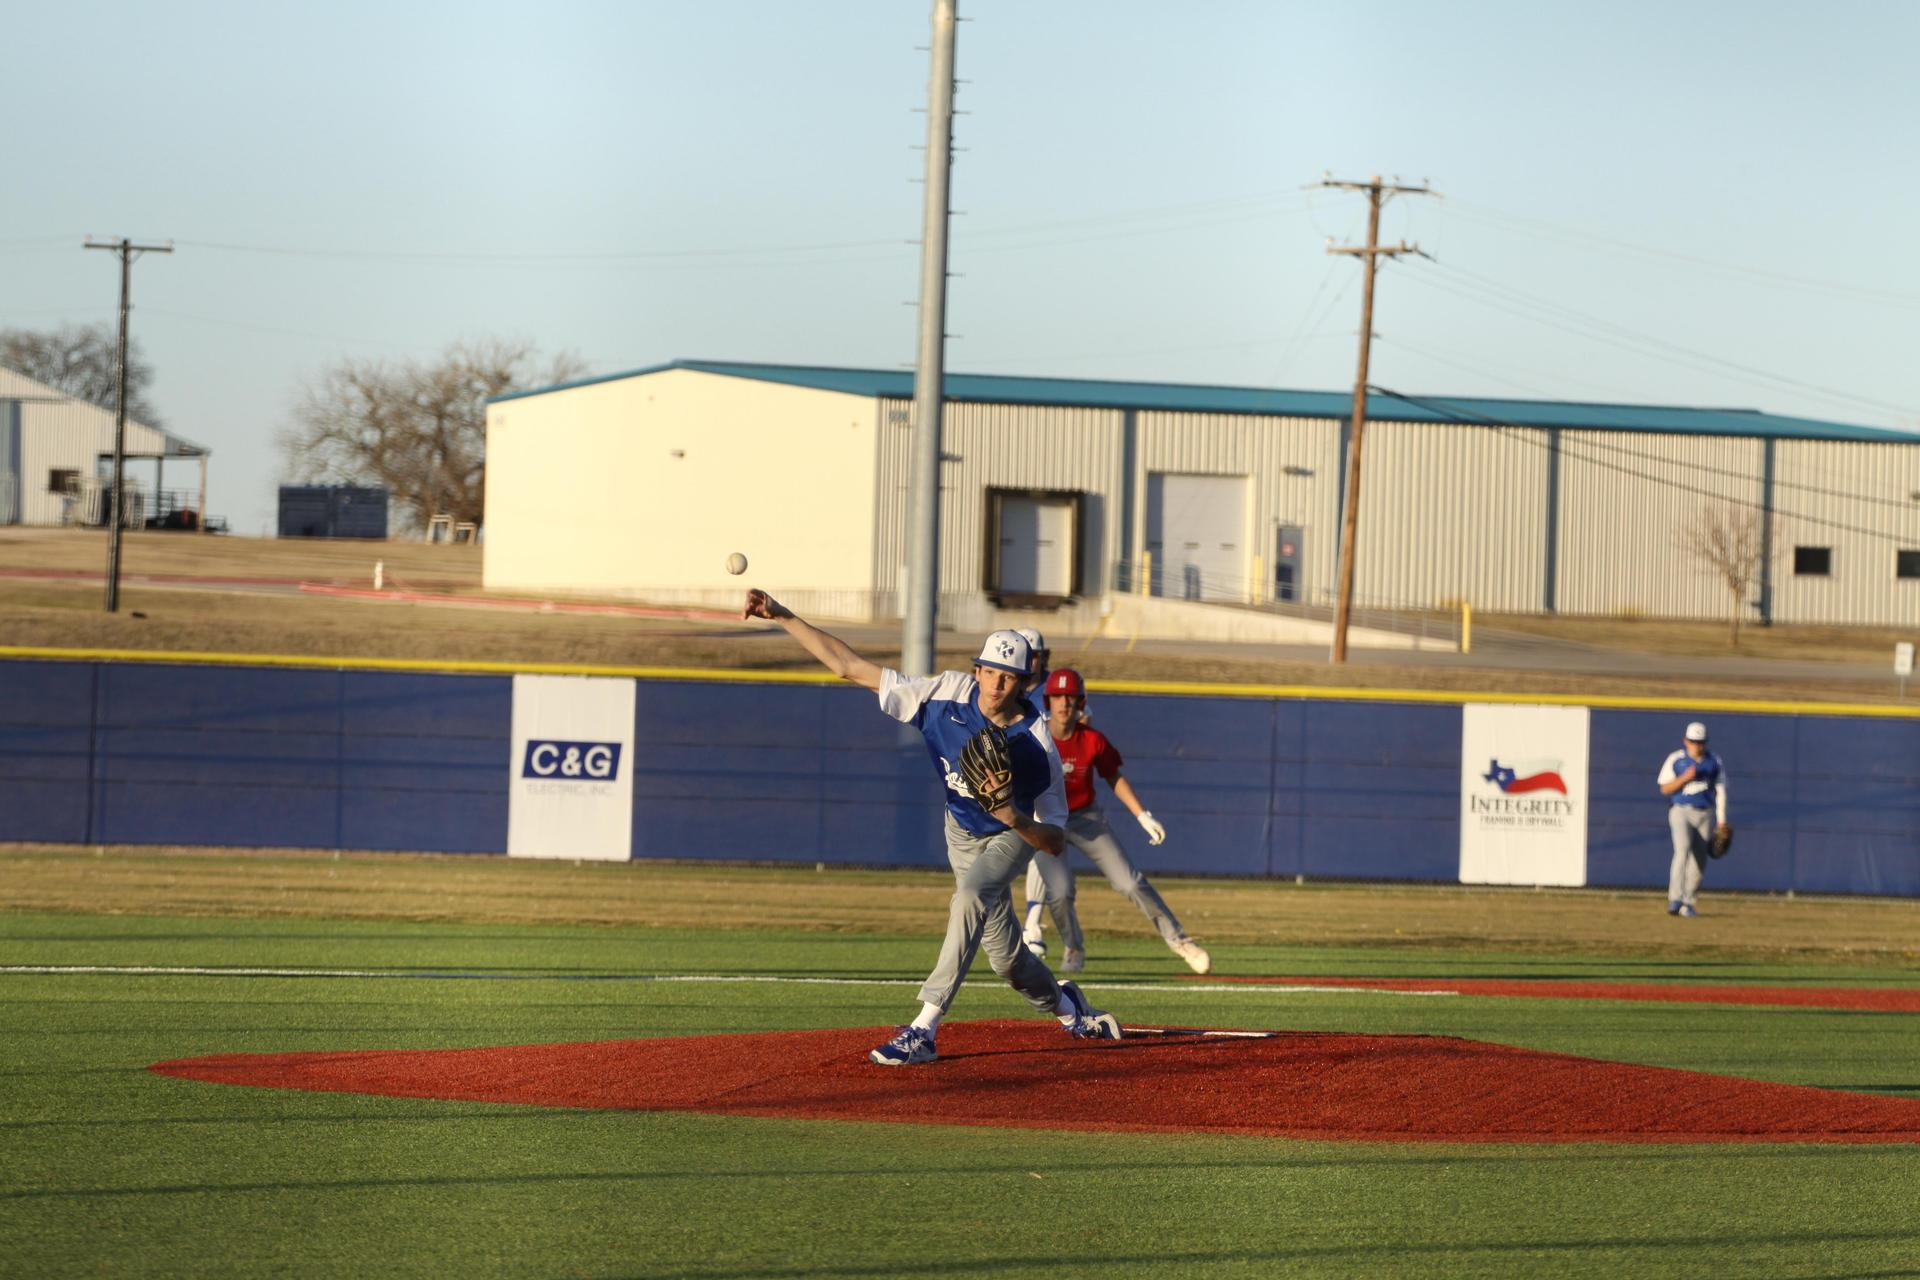 a baseball player throws a pitch to the batter